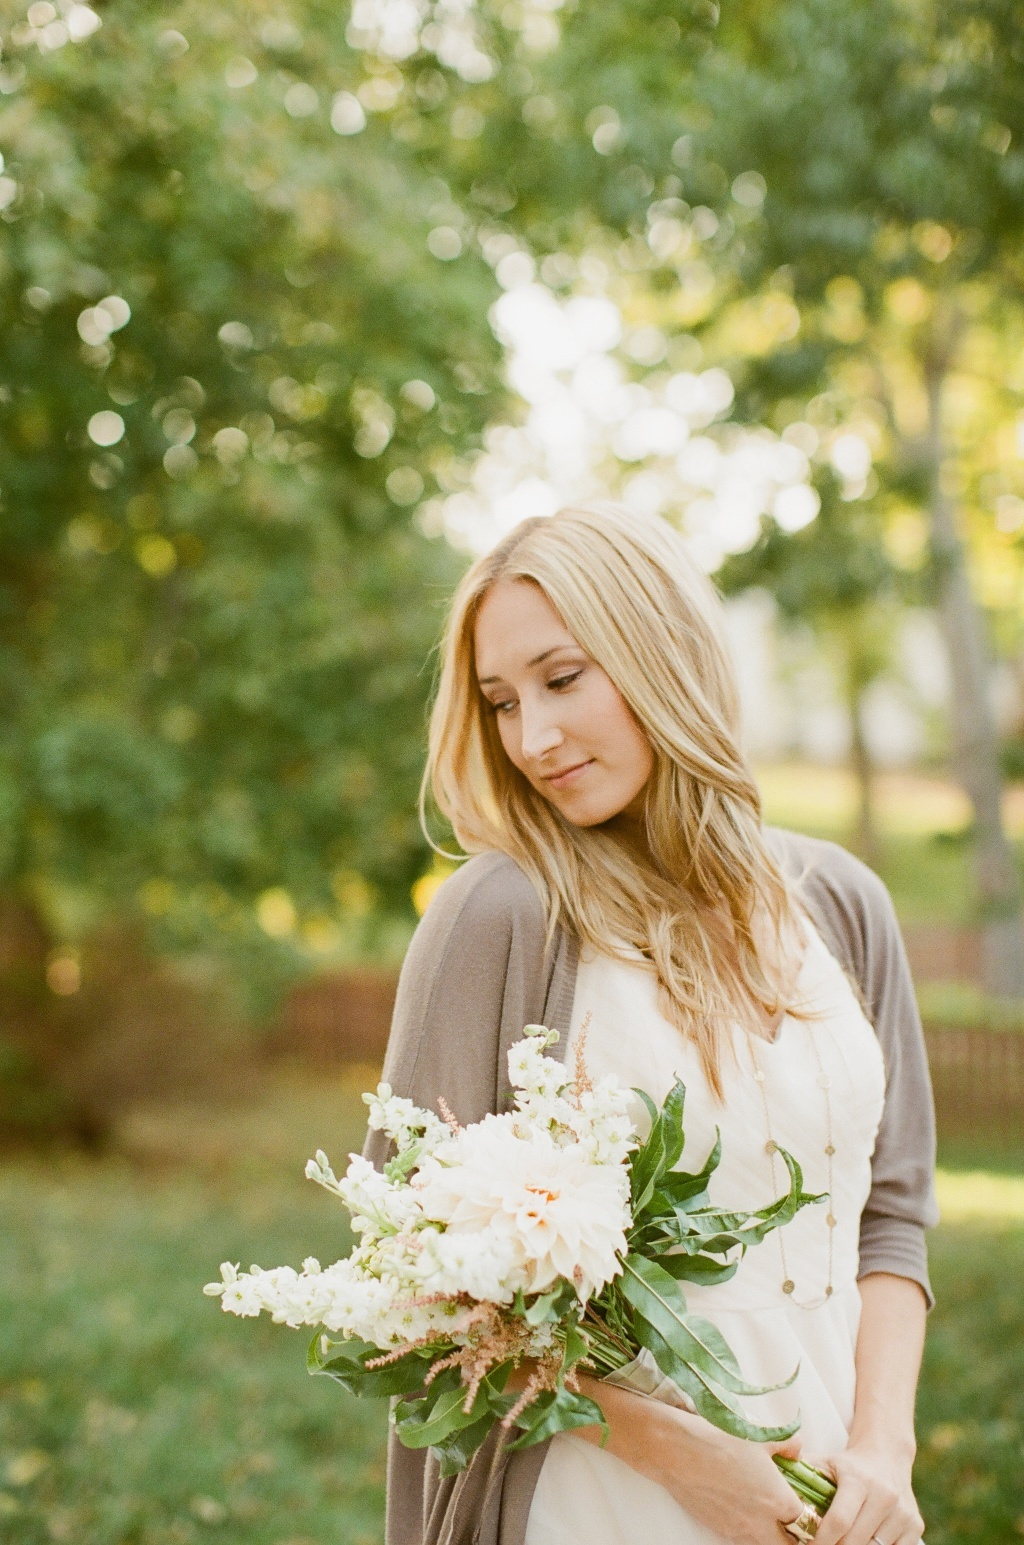 Outdoor-wedding-shoot-romantic-bride-with-bouquet.full